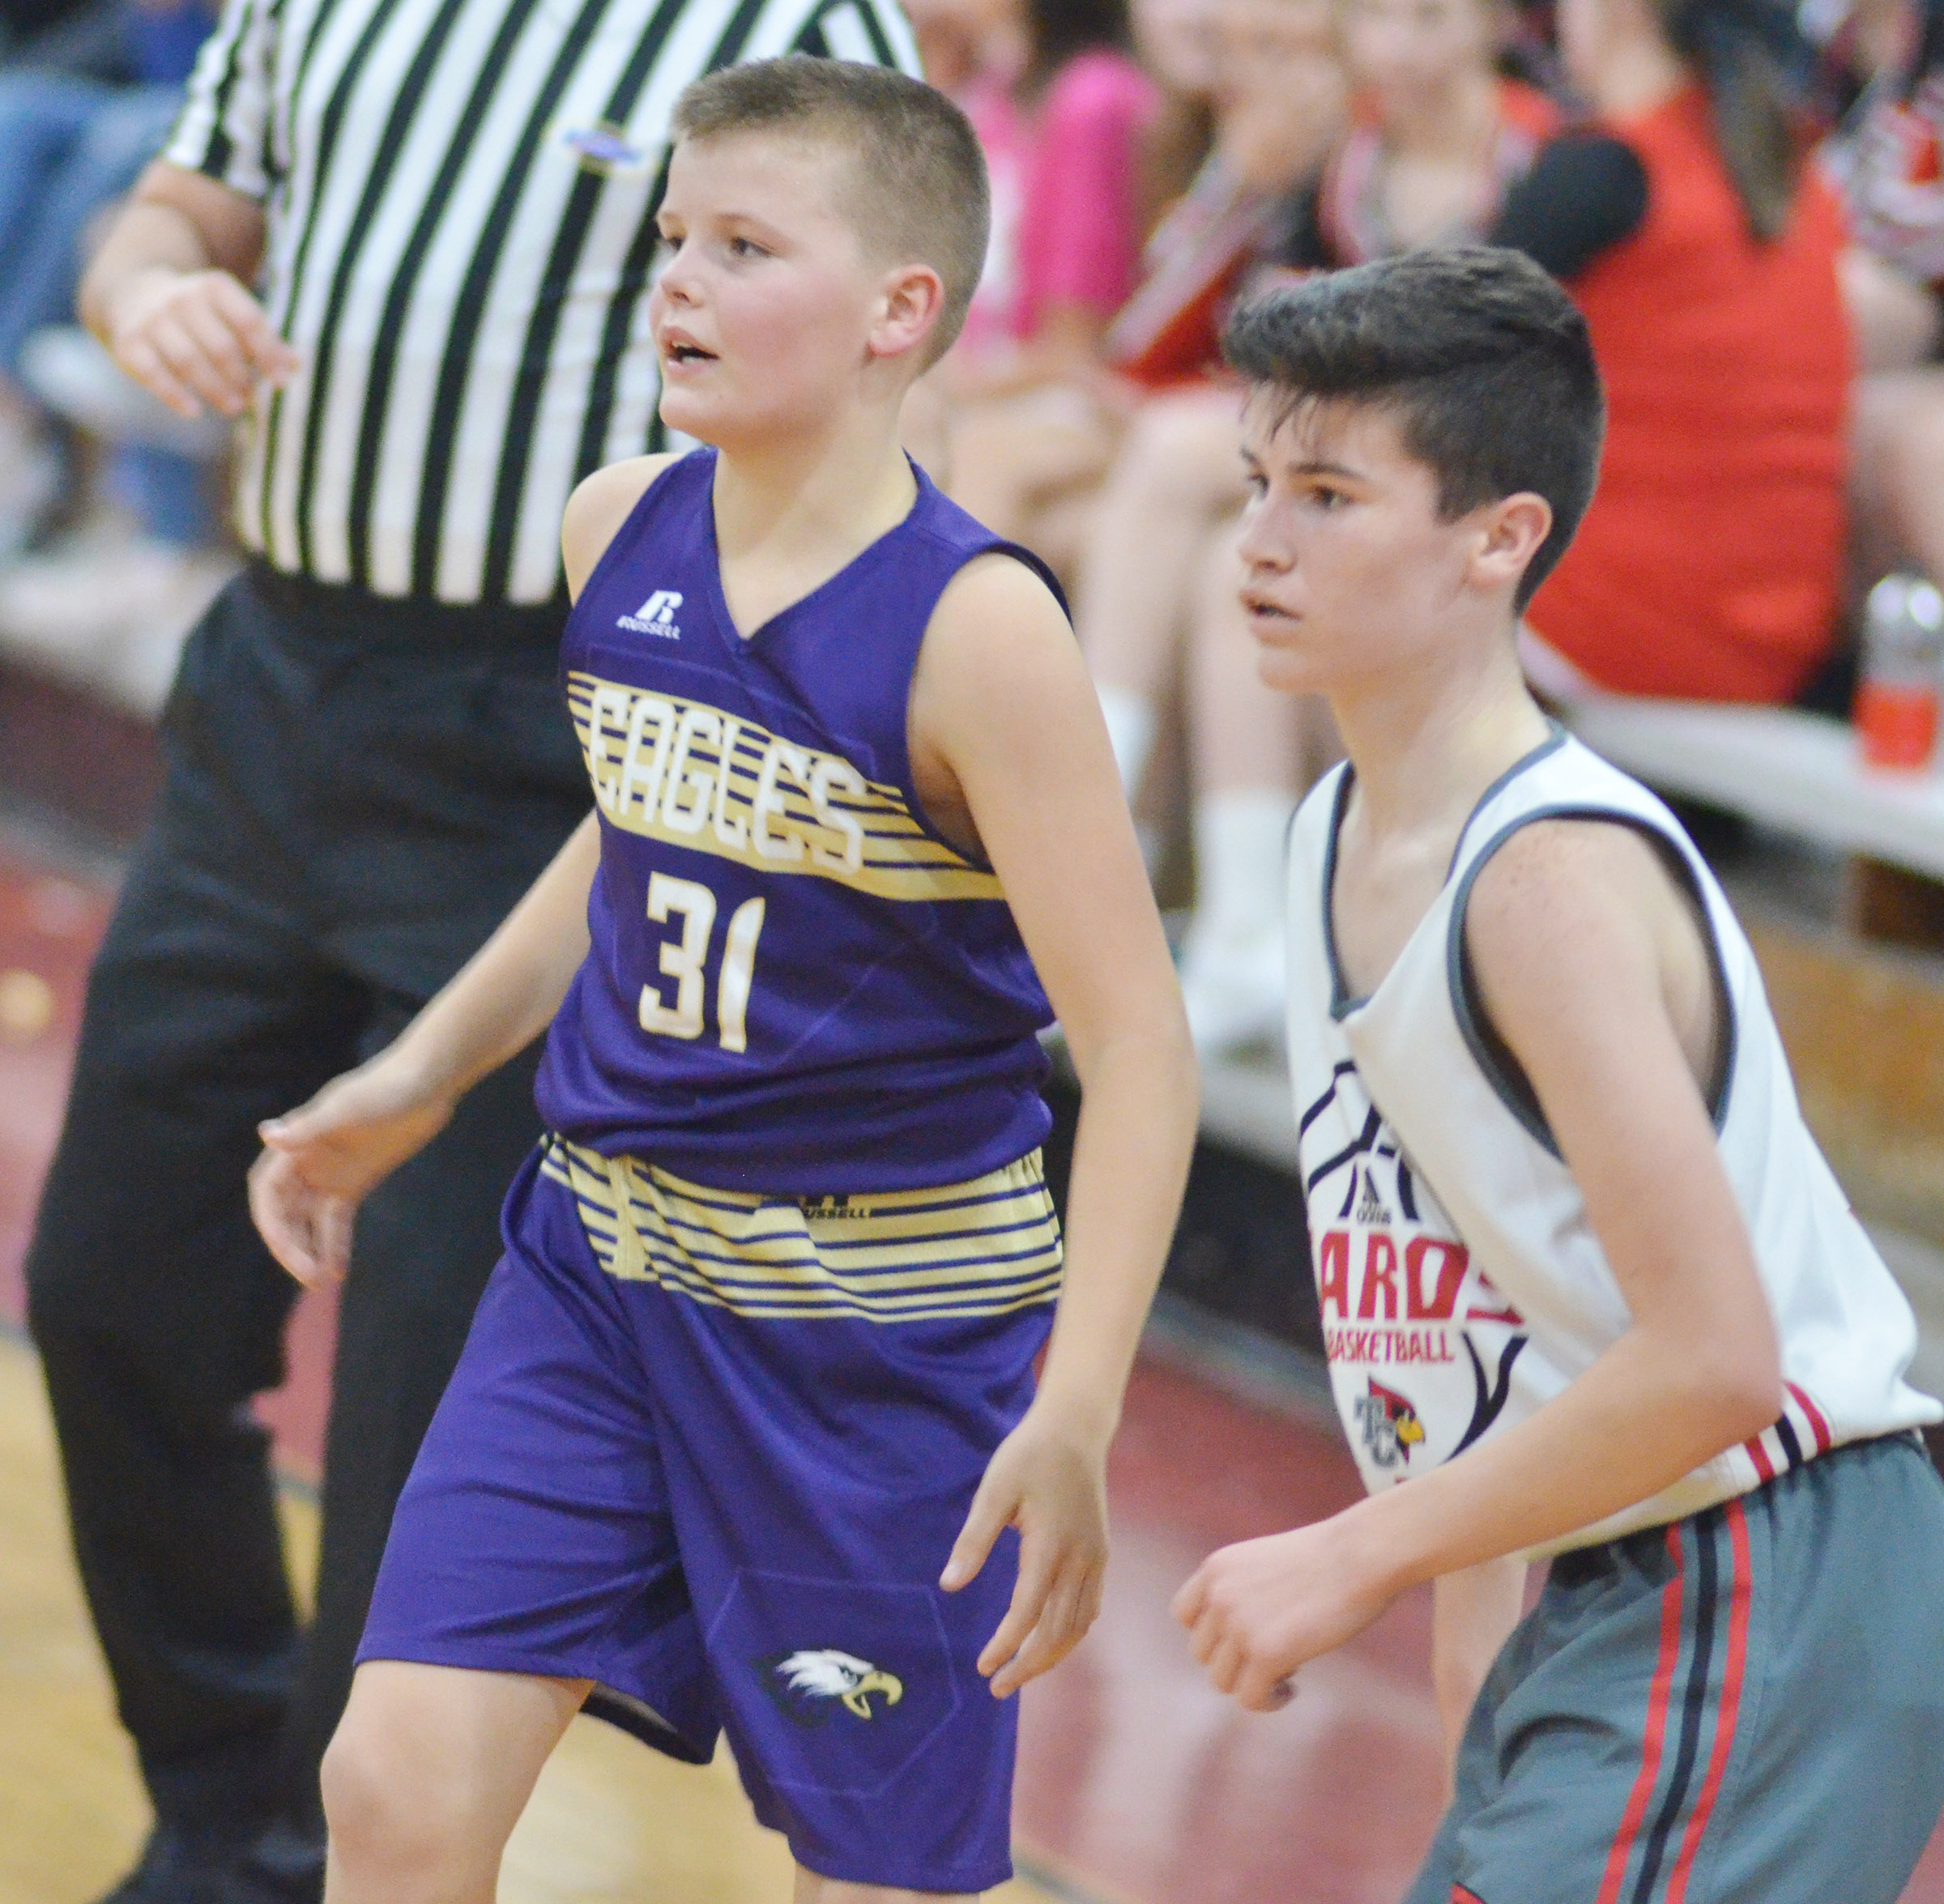 CMS seventh-grader Konner Forbis plays defense.